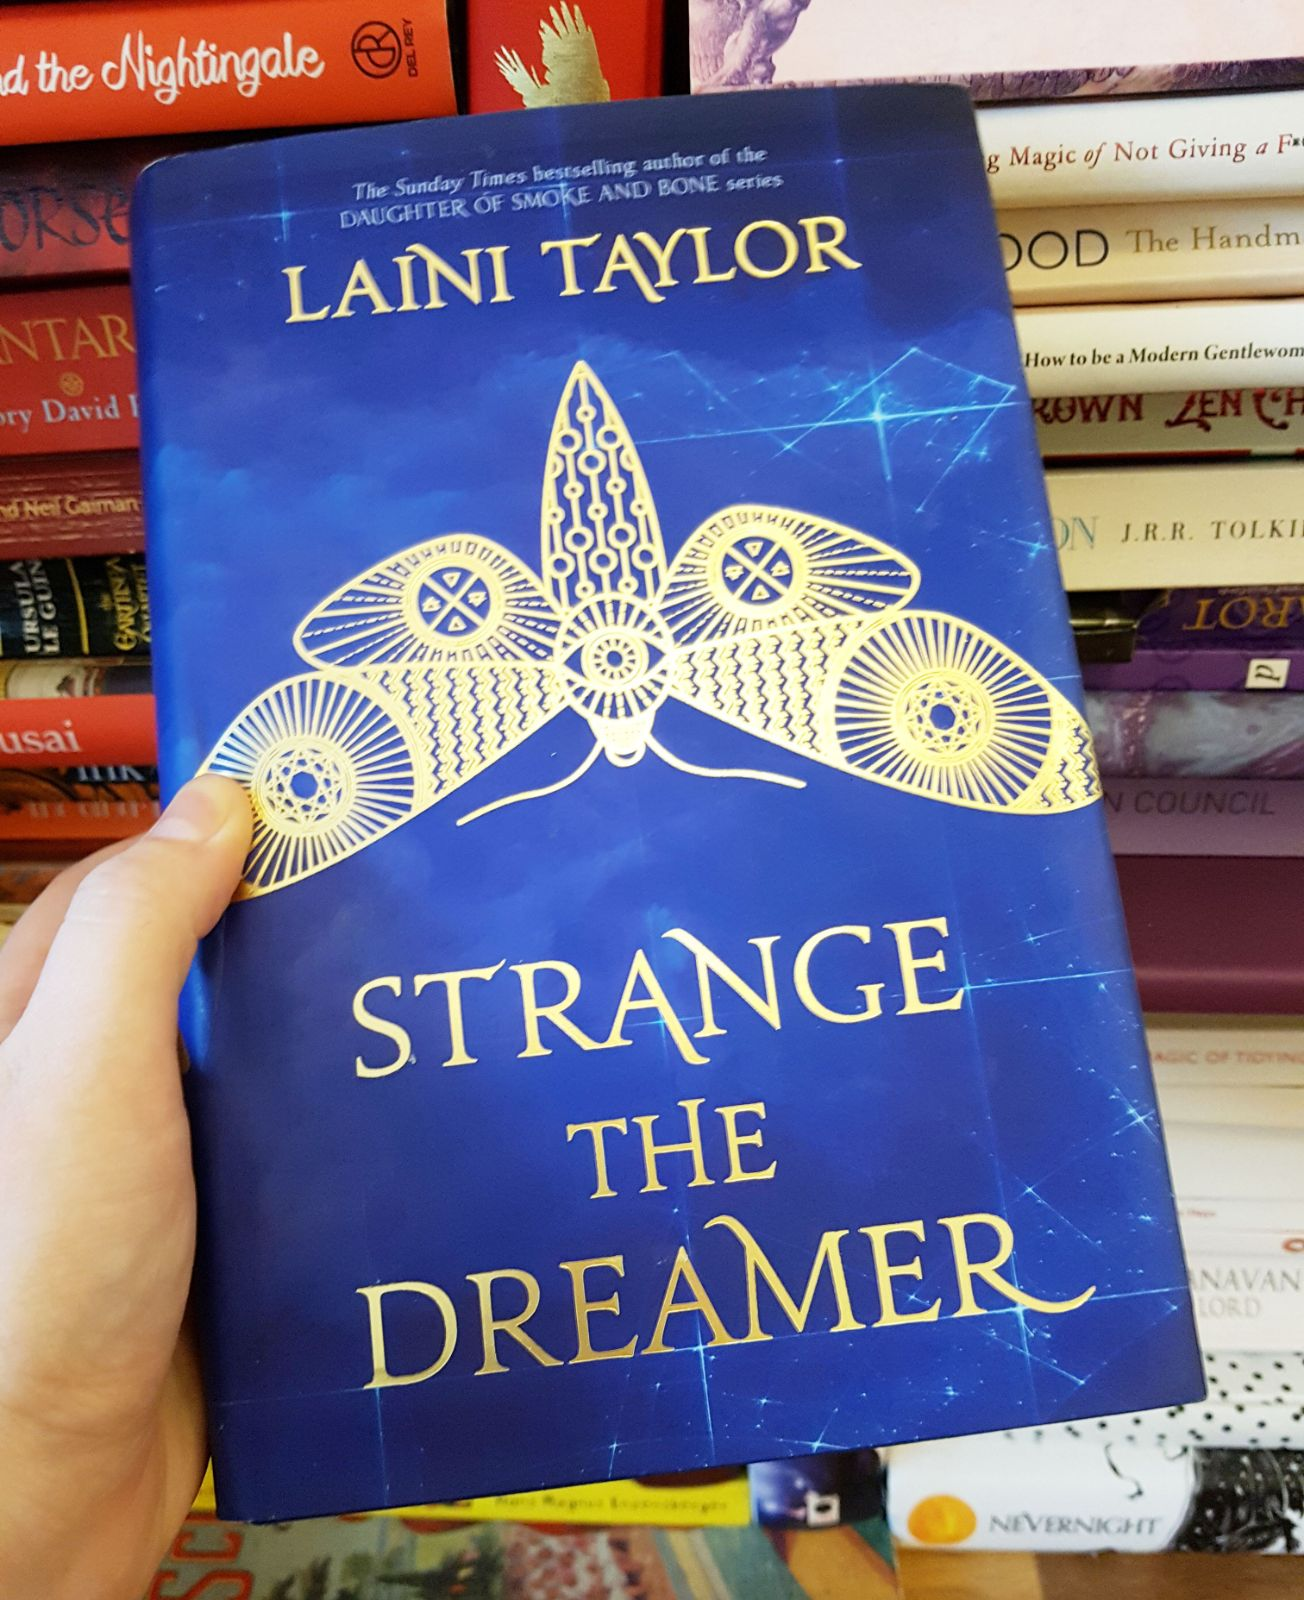 Strange the Dreamer Laini Taylor mini-review